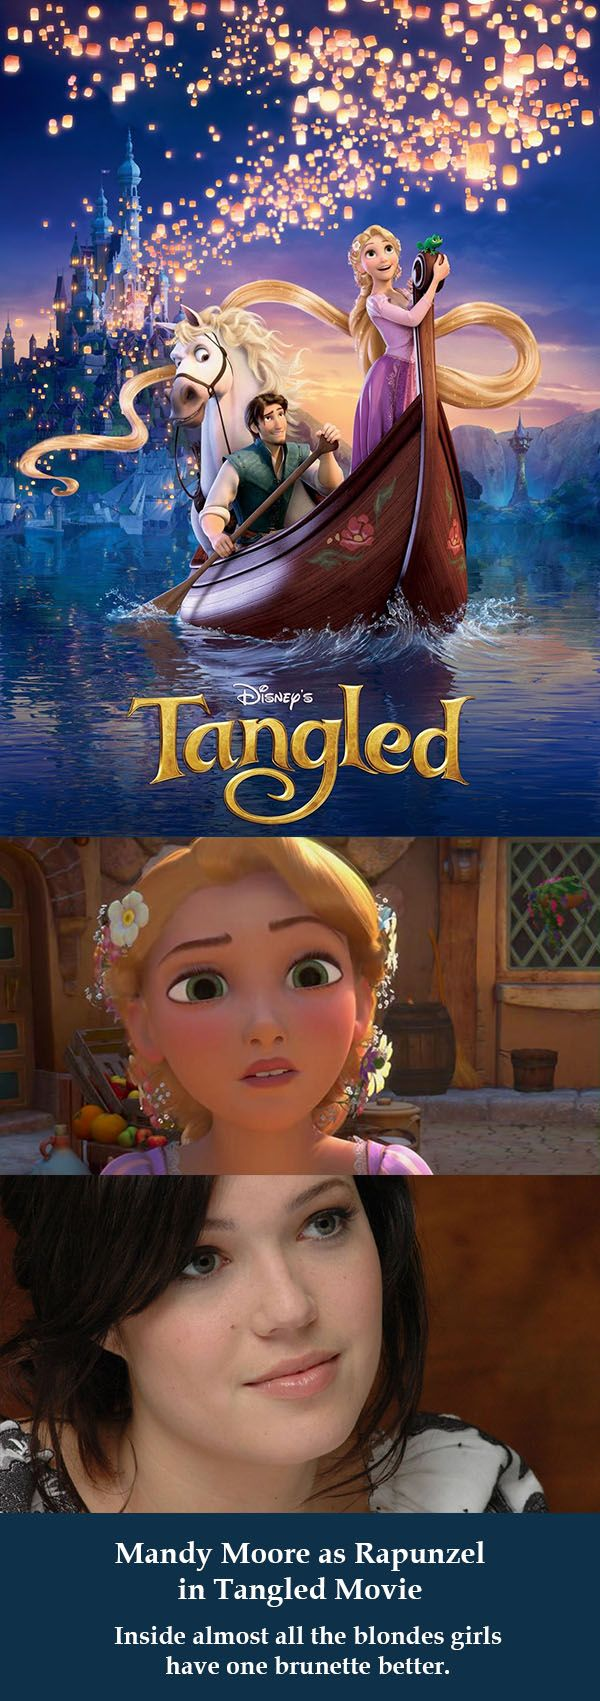 Tangled Movie 2013